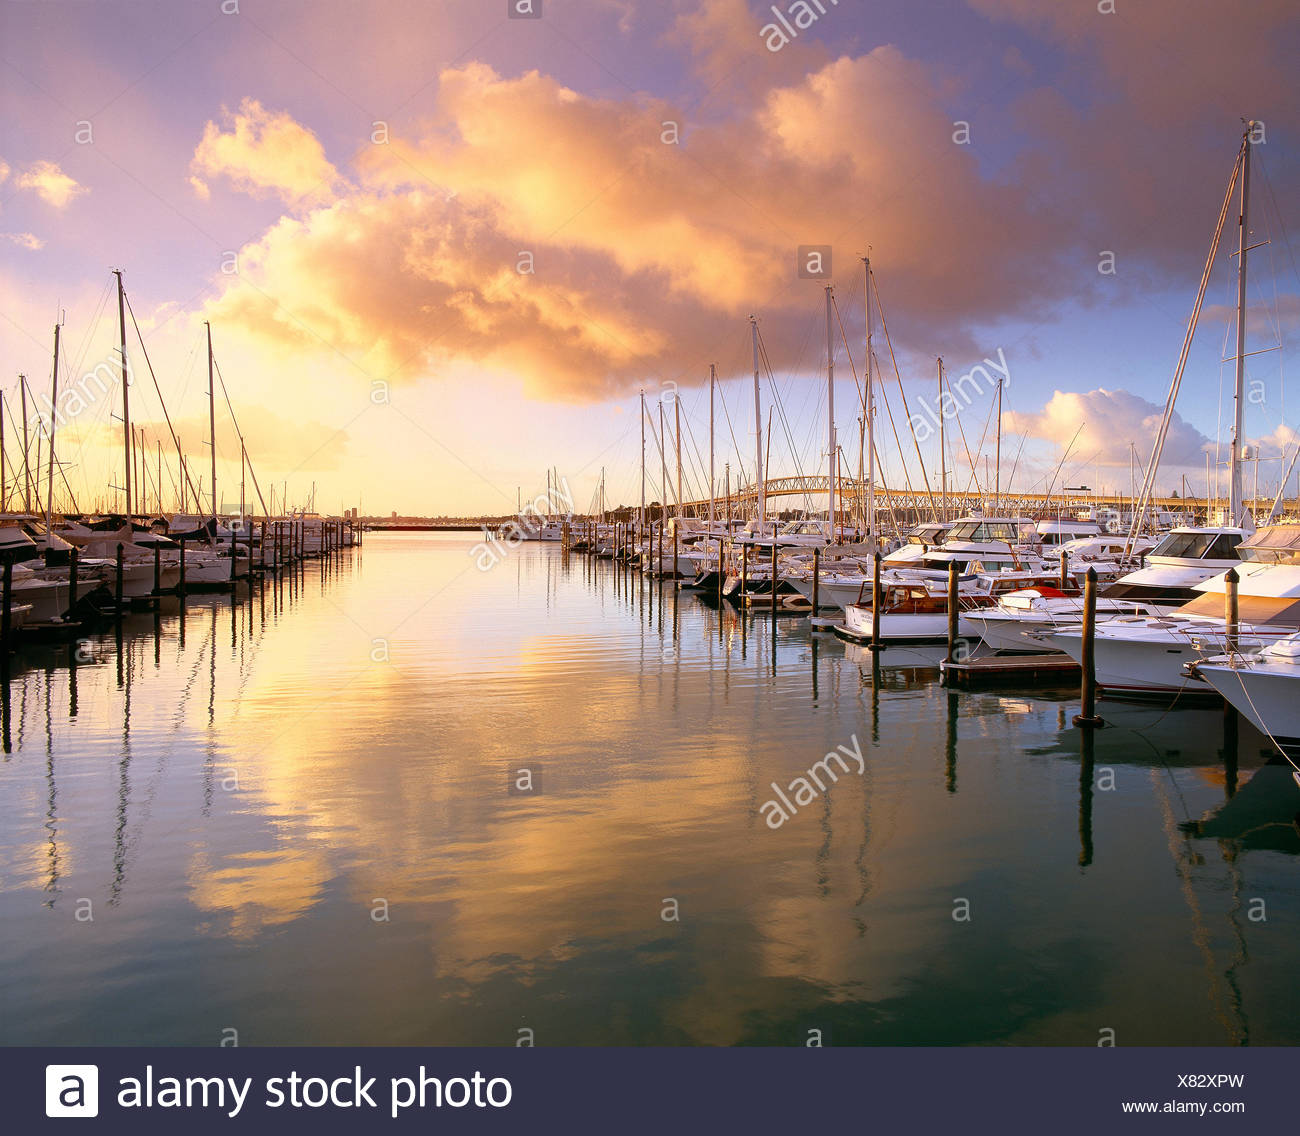 New Zealand. Auckland. Yachts in marina at sunrise. - Stock Image